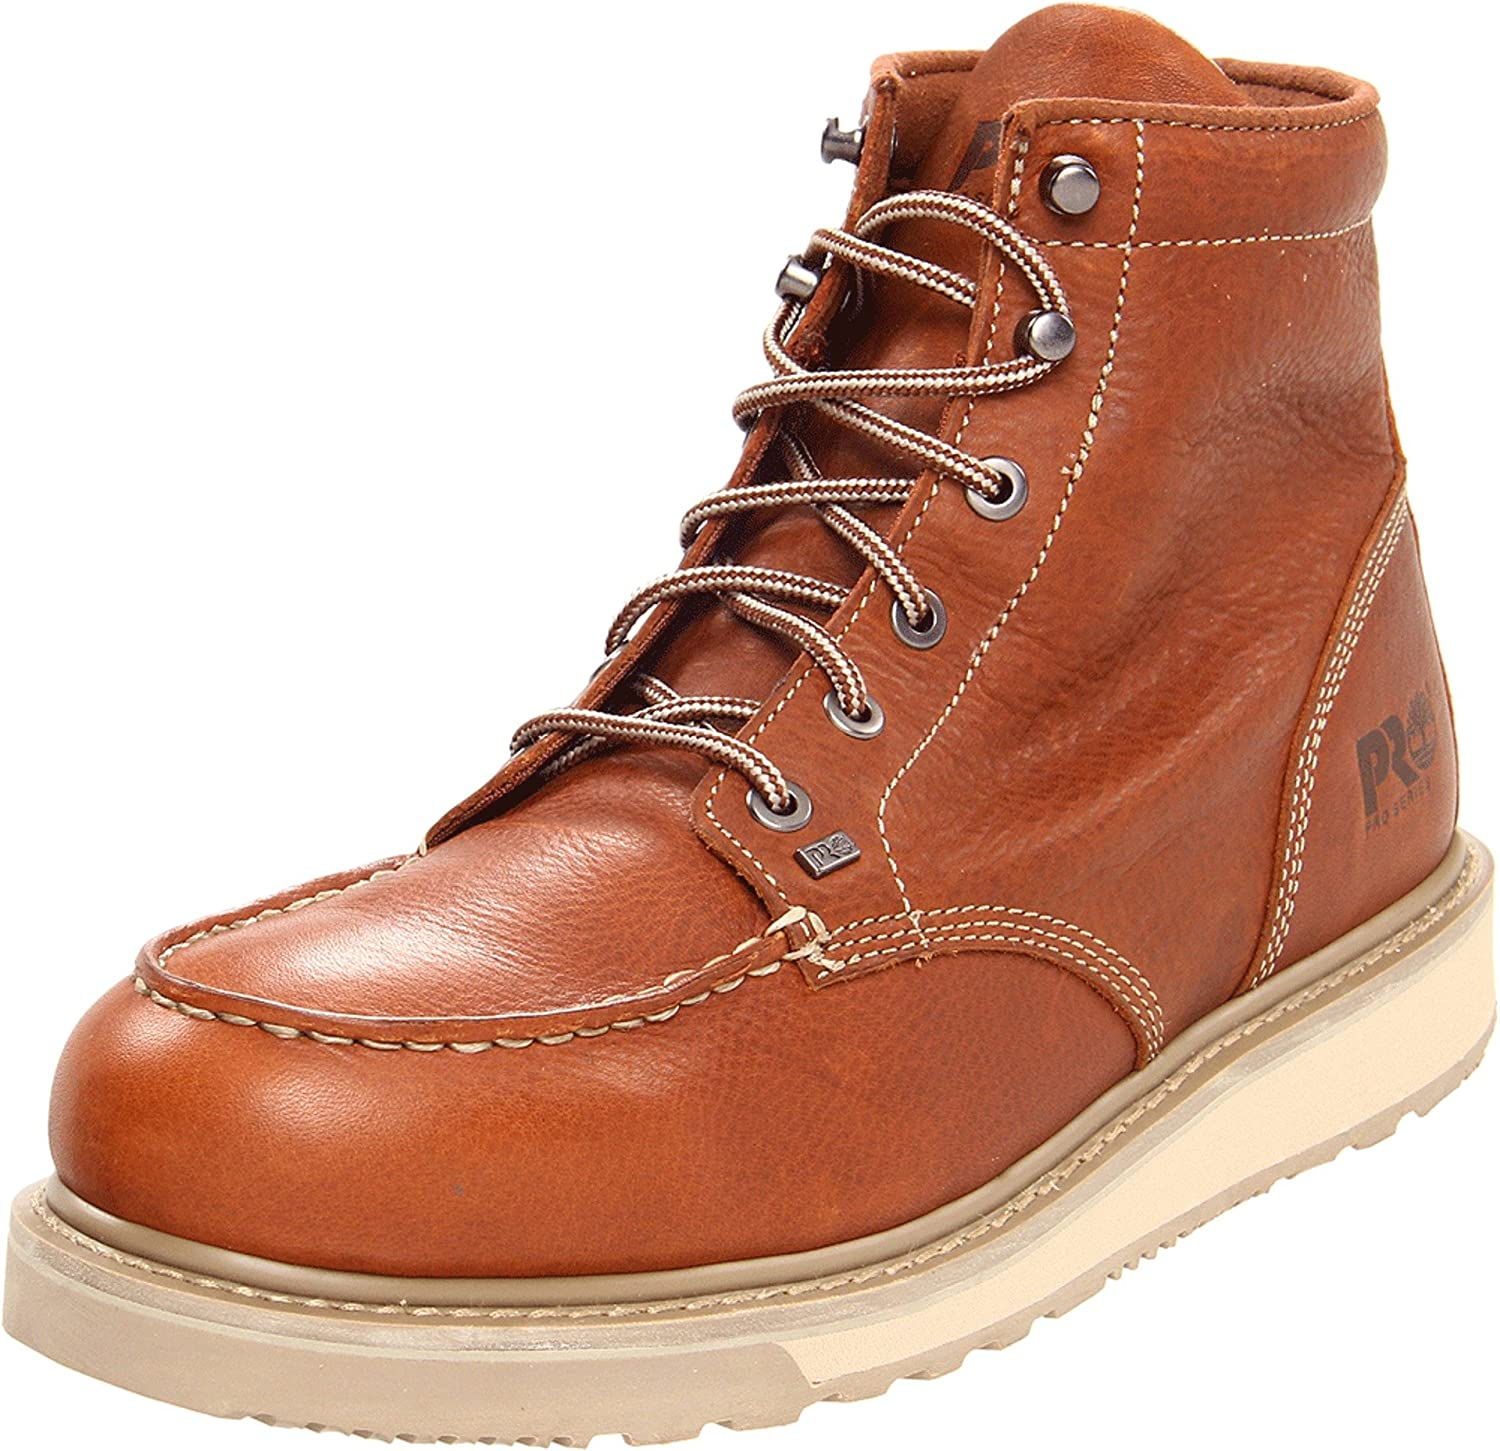 Amazon.com: Timberland PRO Men's Barstow Wedge Work Boot: Shoes